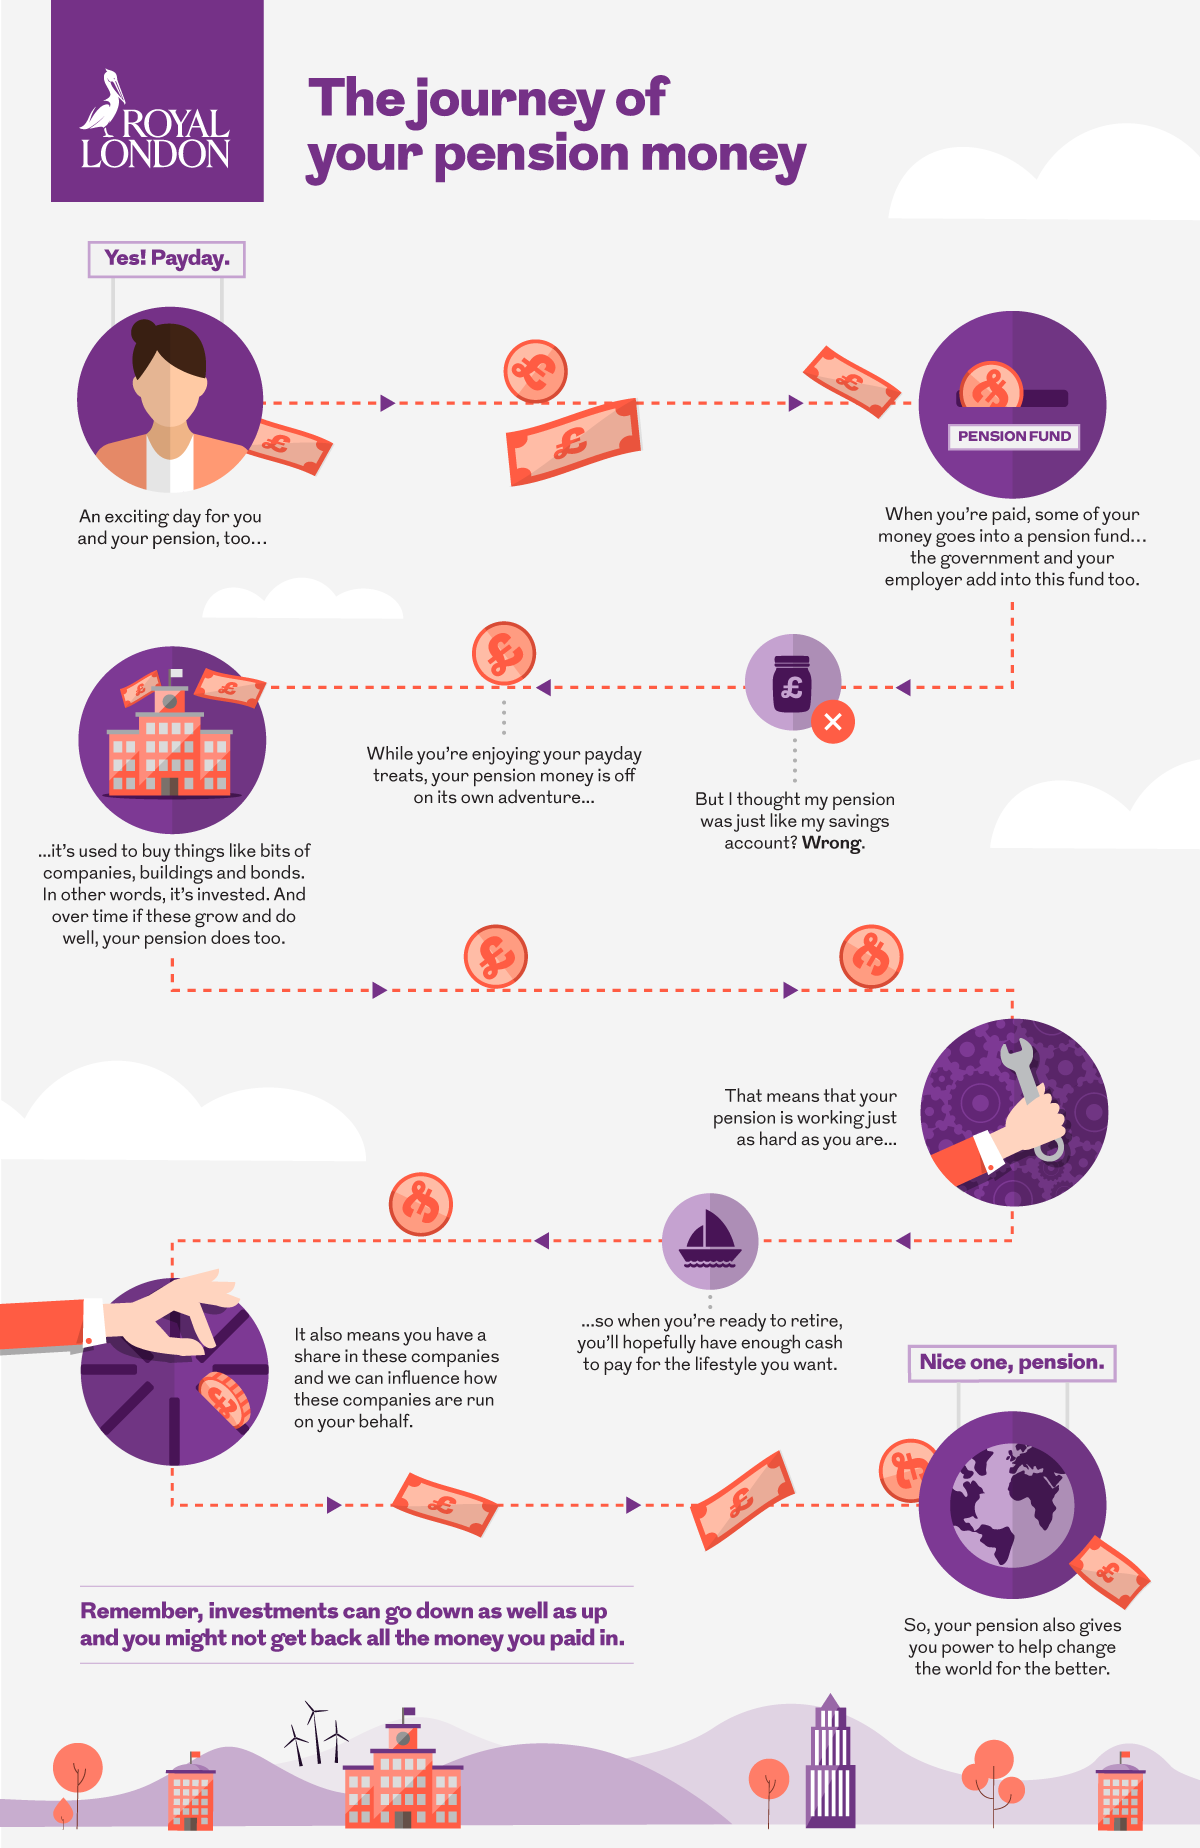 The Journey of your pension money infographic. This image is an infographic and has alternative text available if you are using a screen reader.